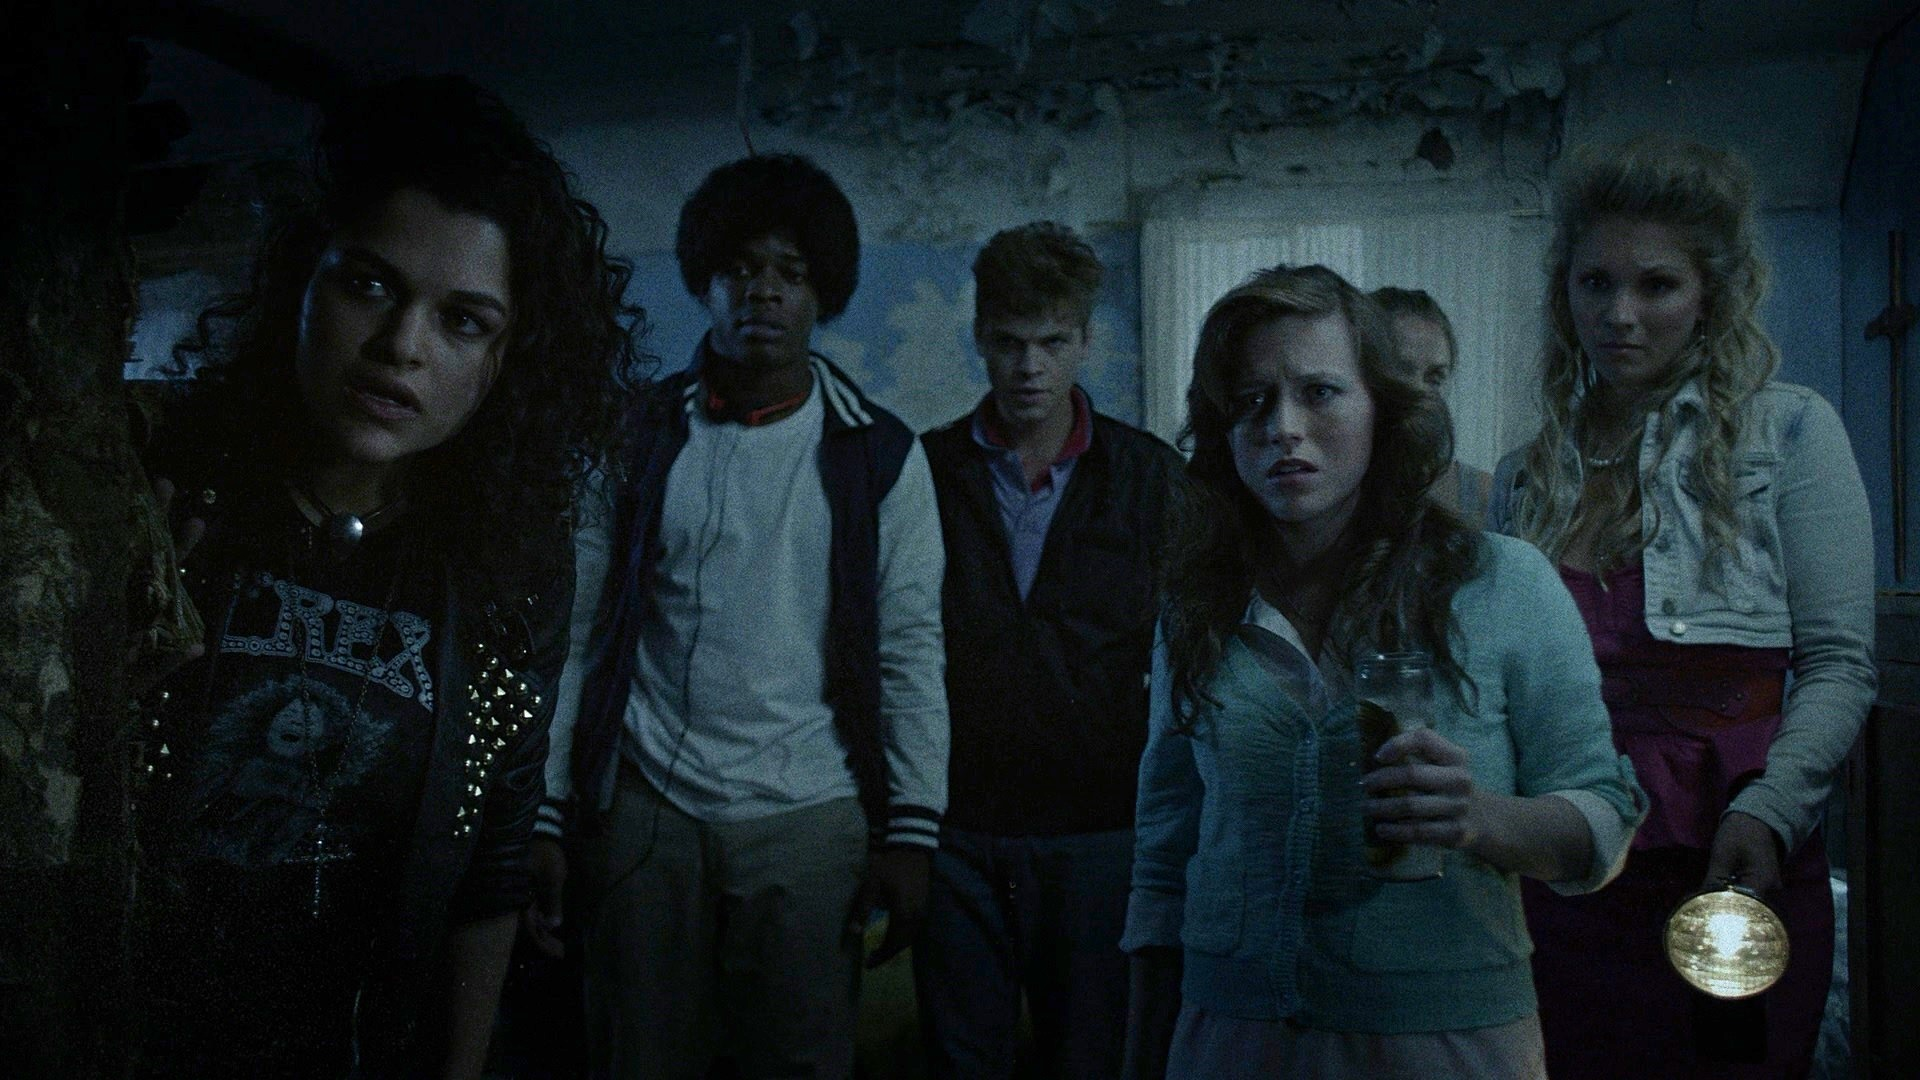 Line-up of teens - (l to r) Eve Harlow, Stephan James, Alexander Calvert, Kendra Leigh Timmins and Laine McAuley in Lost After Dark (2015)